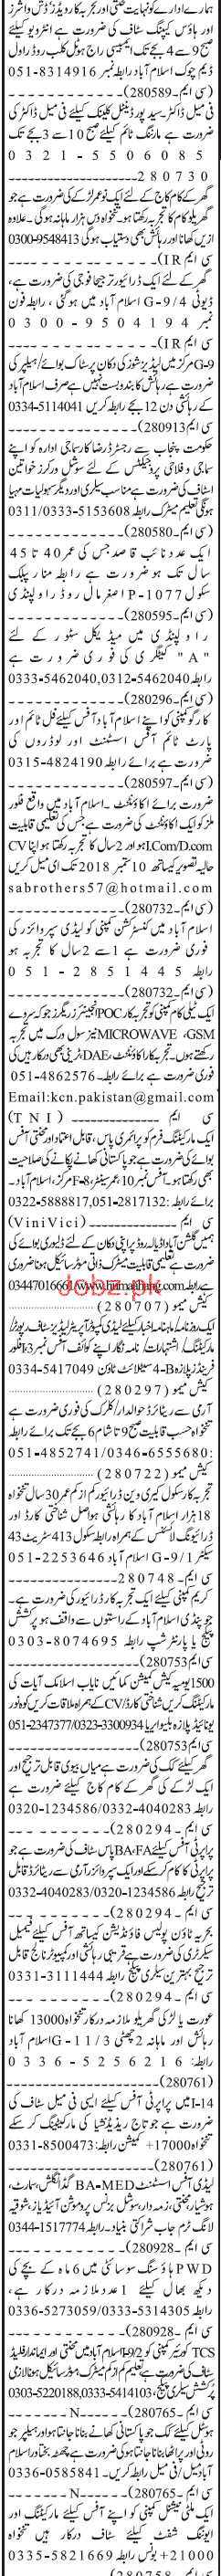 Accountant, Office Boys, Assistant, Driver Job Opportunity